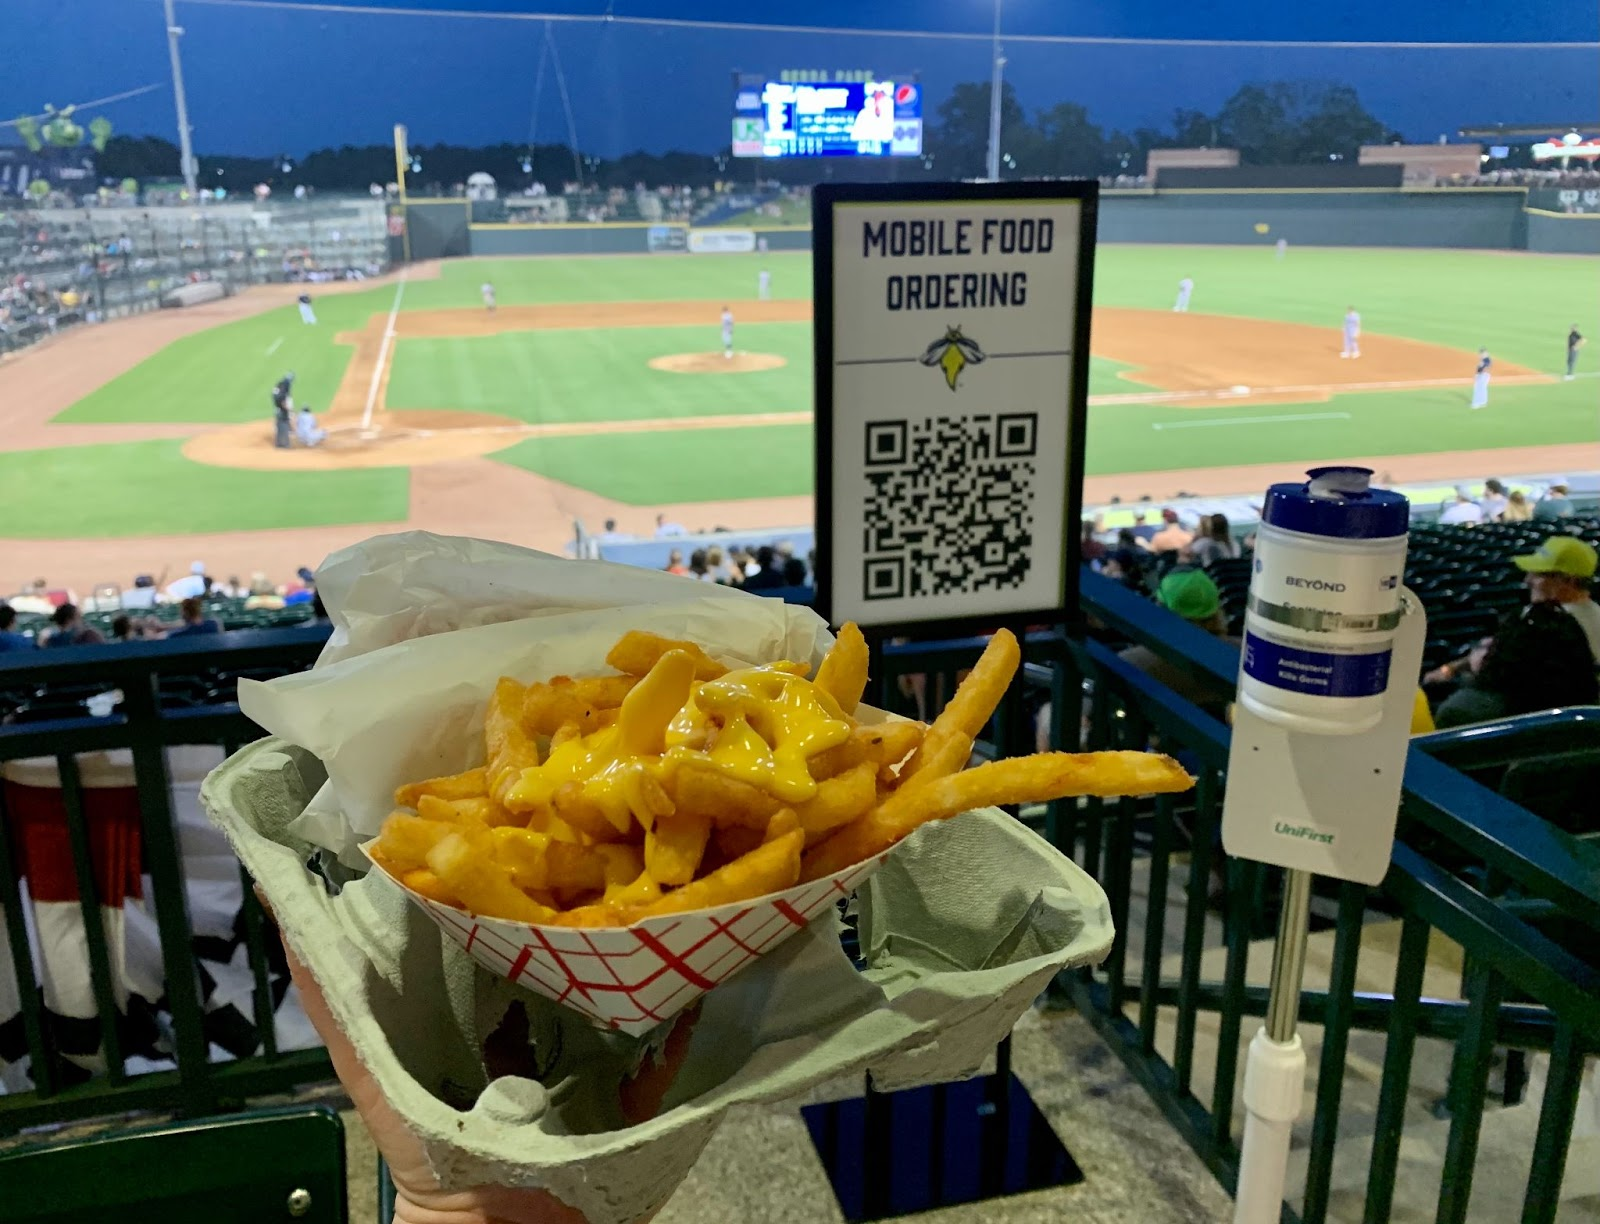 Cheese fries in front of mobile ordering sign